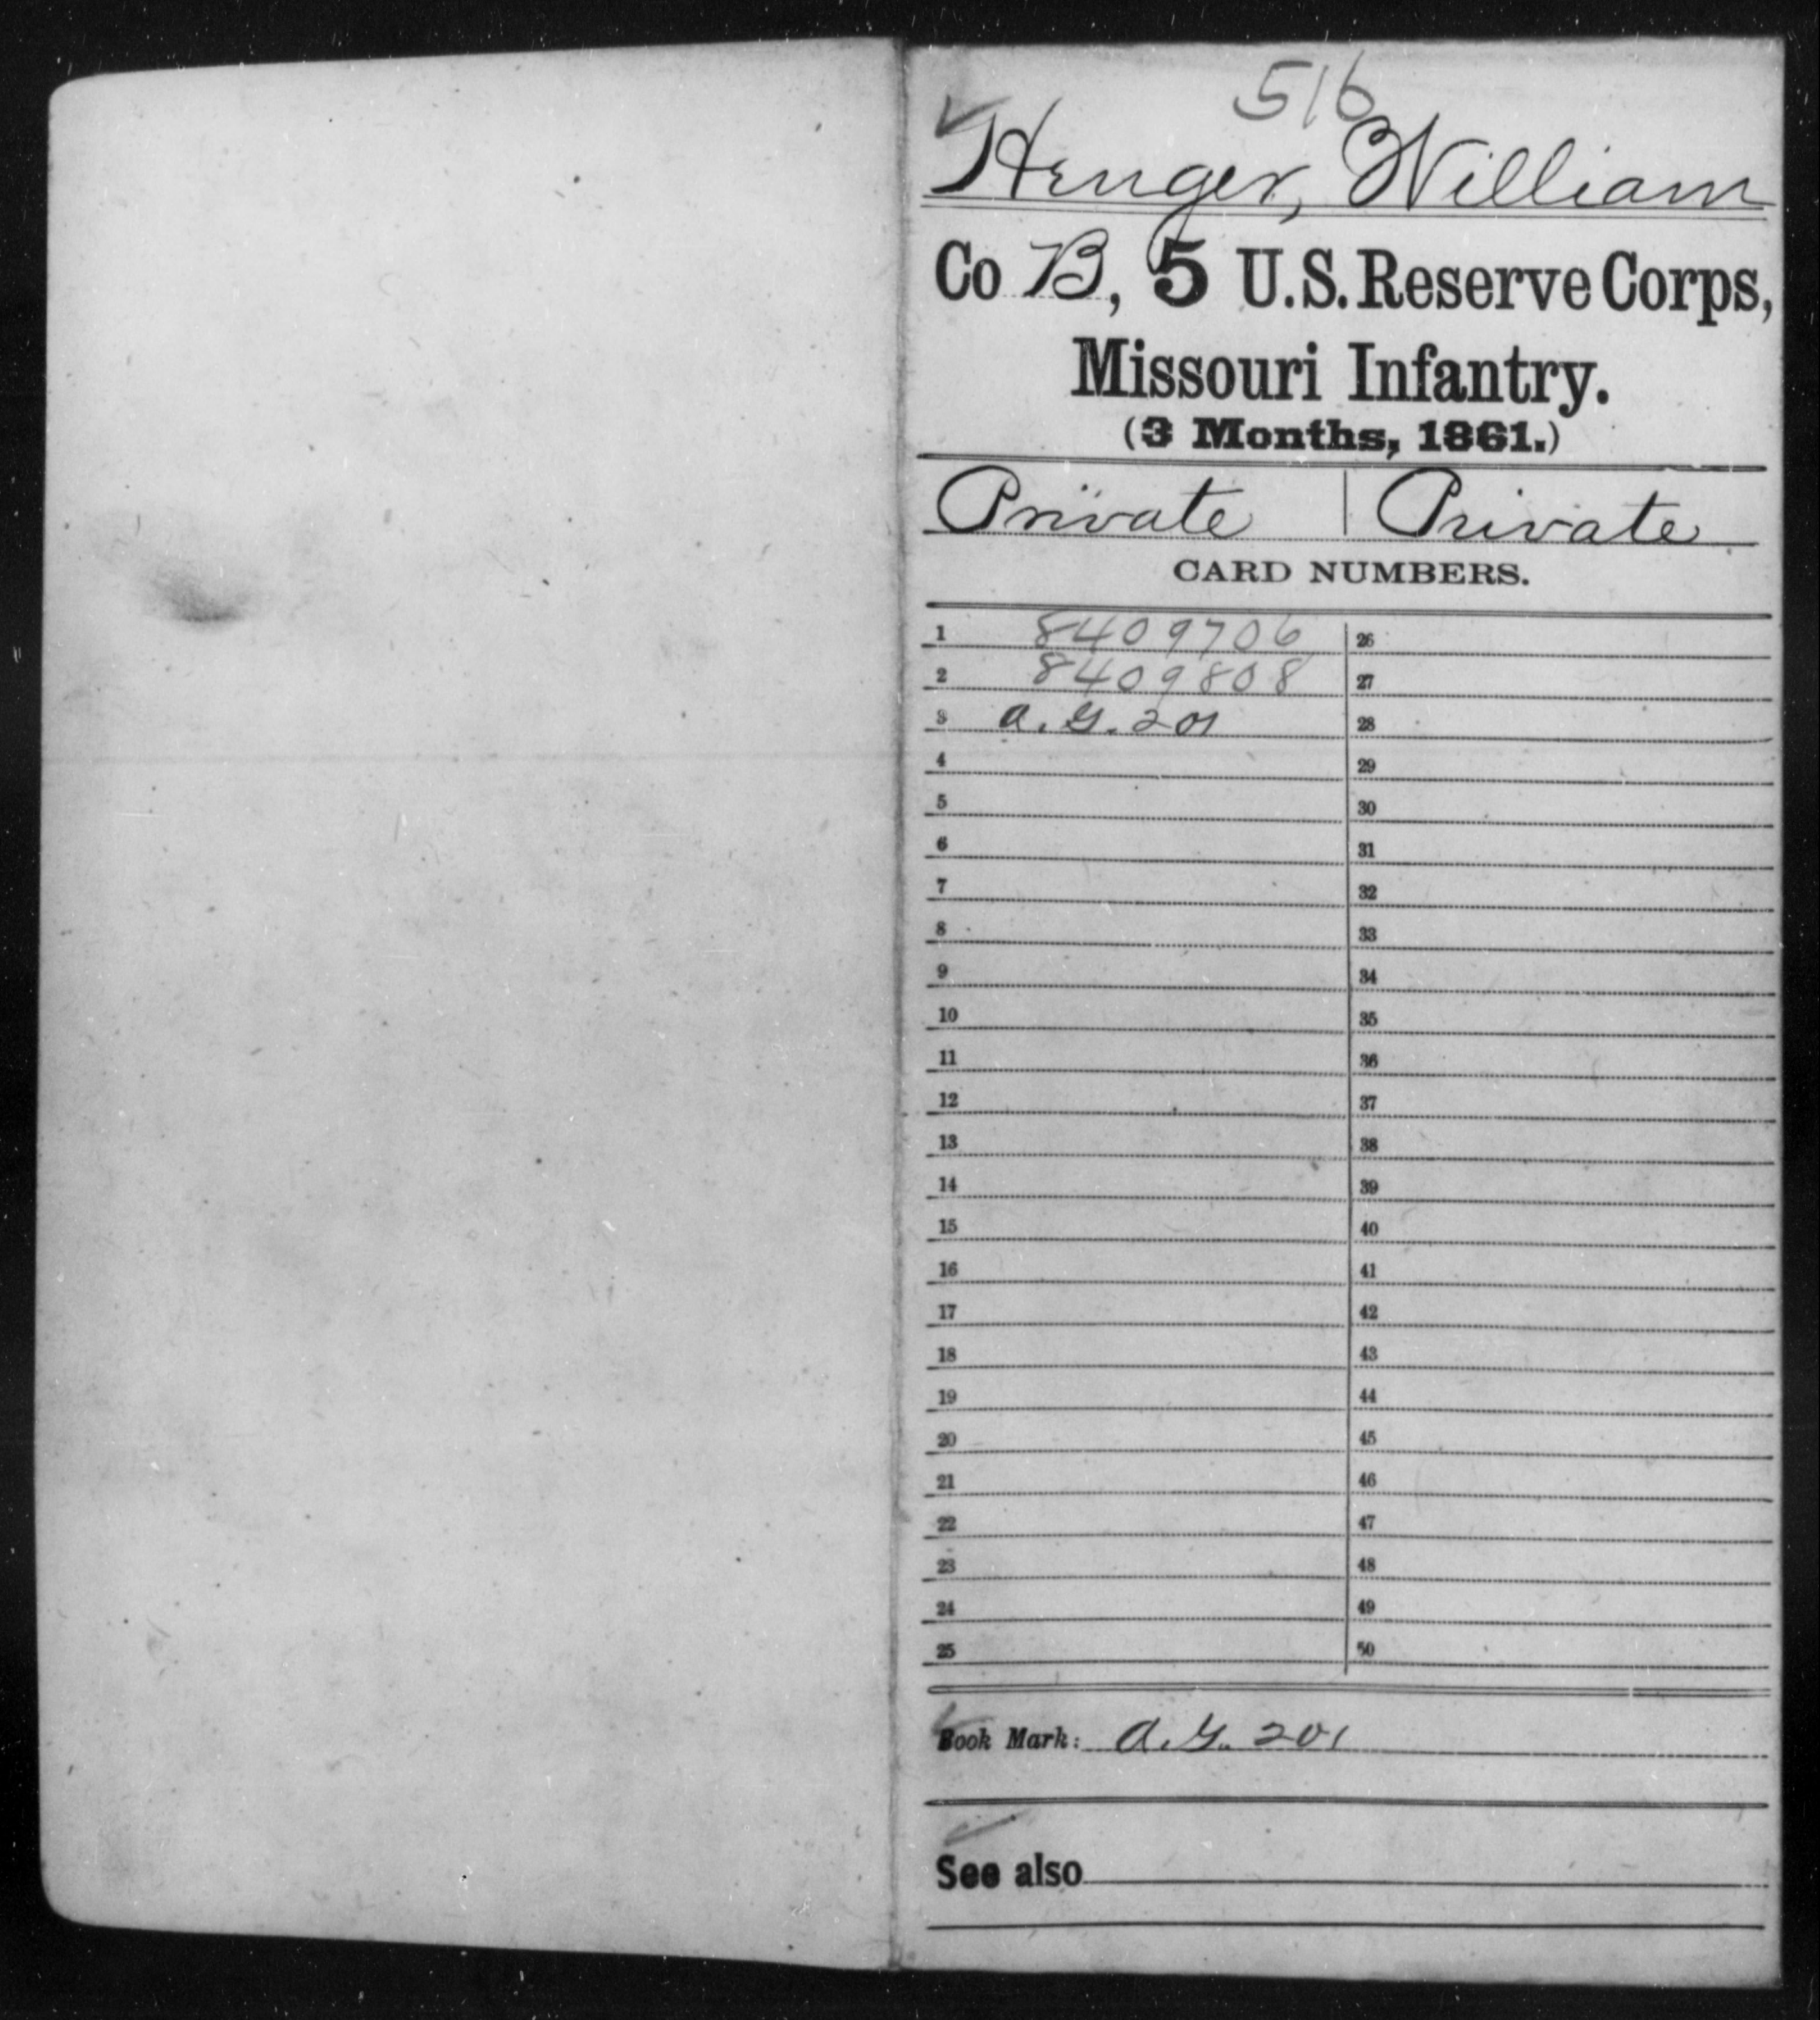 [Missouri] Henger, William - Age 45, Year: 1861 - Fifth US Reserve Corps, Infantry (1861), A-N